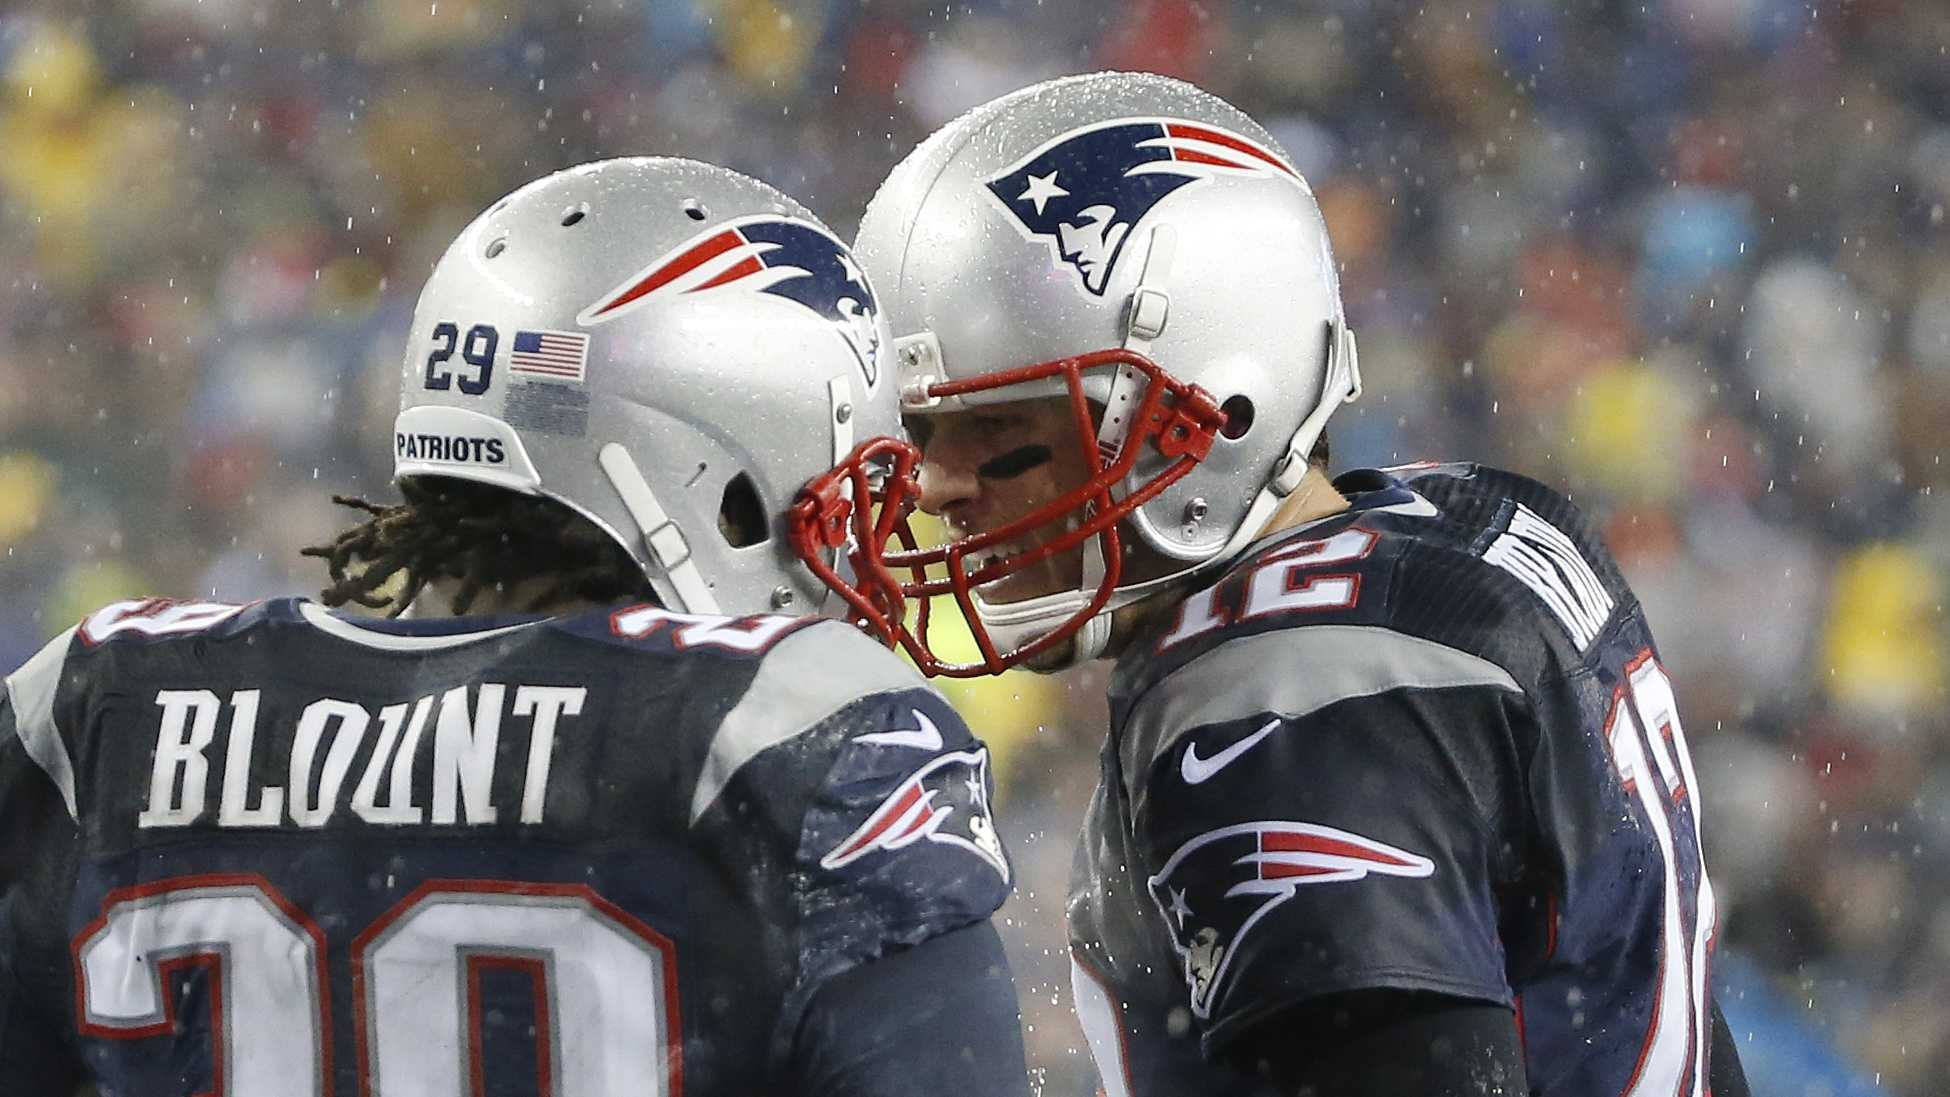 New England Patriots running back LeGarrette Blount (29) celebrates his touchdown with quarterback Tom Brady, right, in the second quarter of an NFL football game against the Buffalo Bills Sunday, Dec. 29, 2013, in Foxborough, Mass.